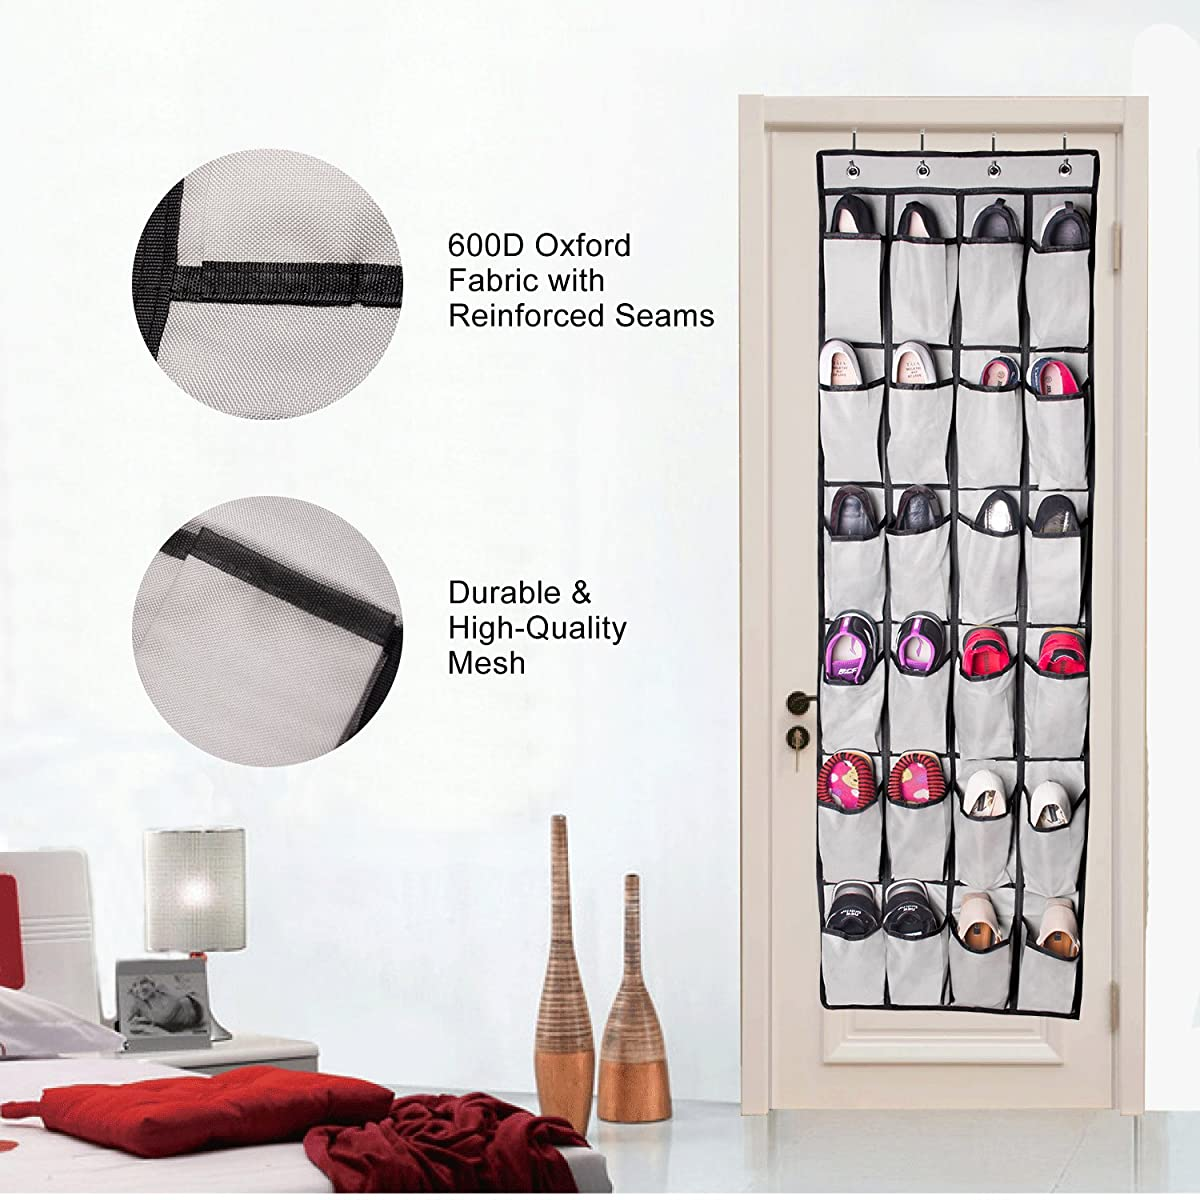 Famlove Shoe Rack Over The Door Shoes Organizer, 24 Pocket Heavy Duty 600D Oxford Fabric Shoe Hanging Storage Organizer for Bedroom, Baby Room, Kitchen, Office (Grey)